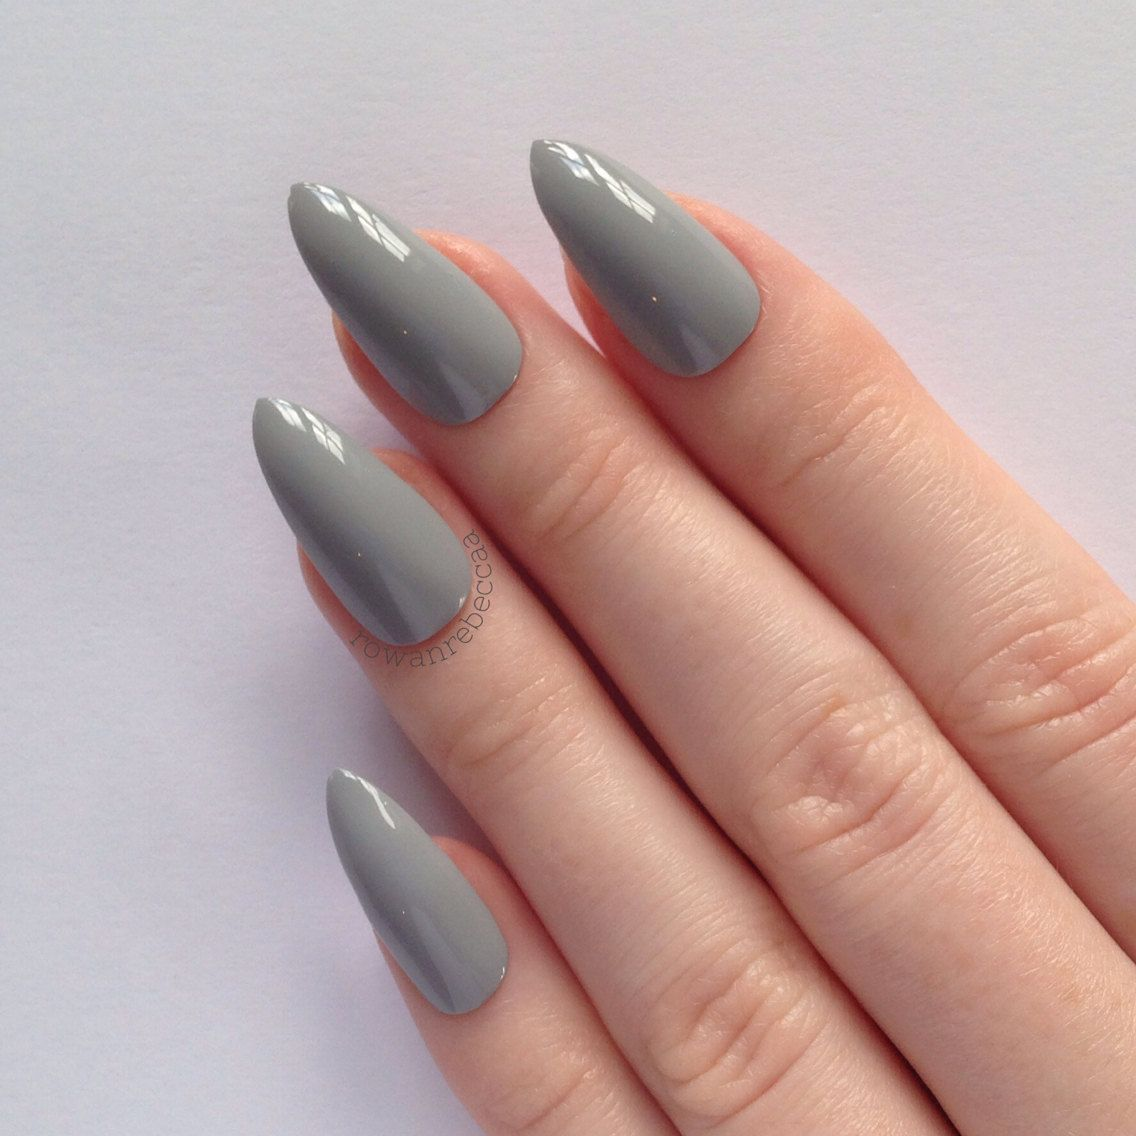 Christmas Acrylic Nails Grey: Pink And Grey Nail Designs - Google Search